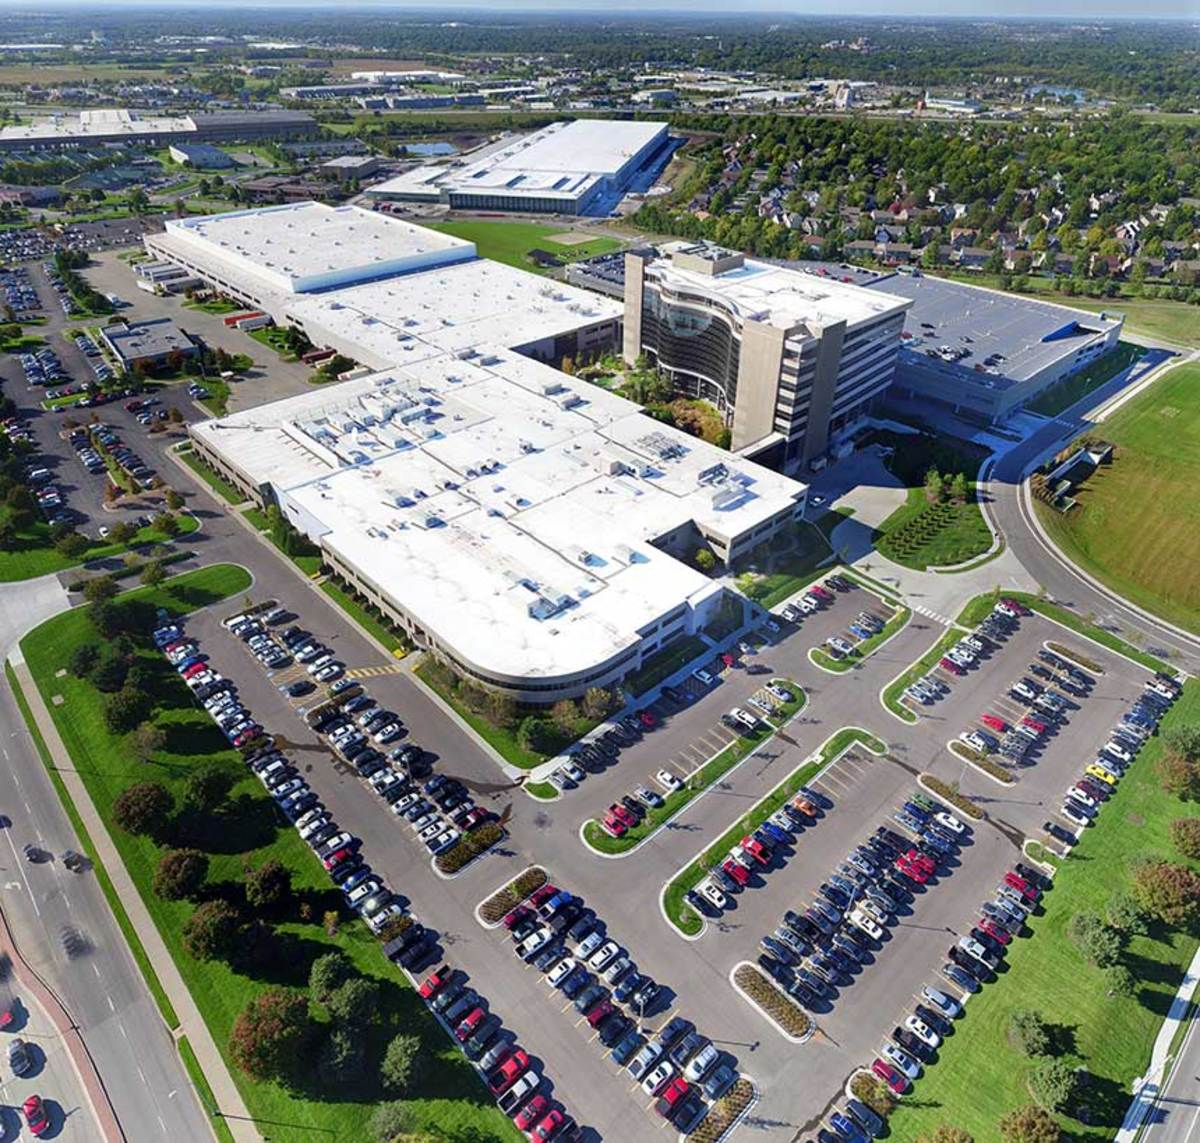 With eight global production facilities, Garmin's home is still Olathe, Kan. It recently completed a $200 million expansion for distribution and manufacturing.